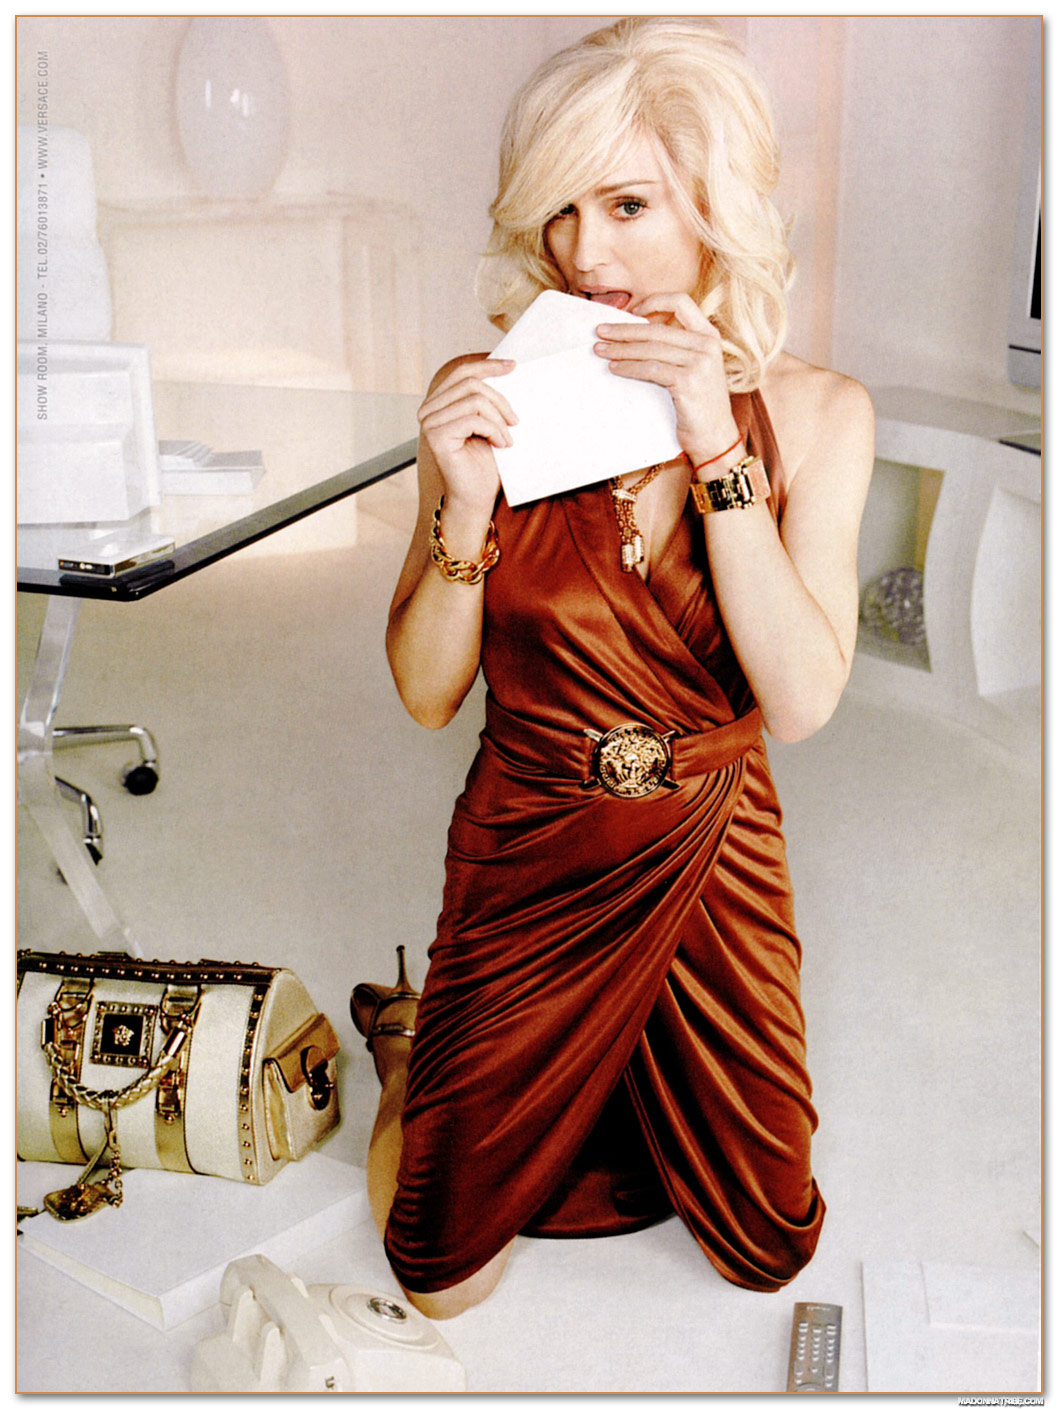 Eames Chair Vintage Versace Madonna Ad Campaign | Shelby White - The